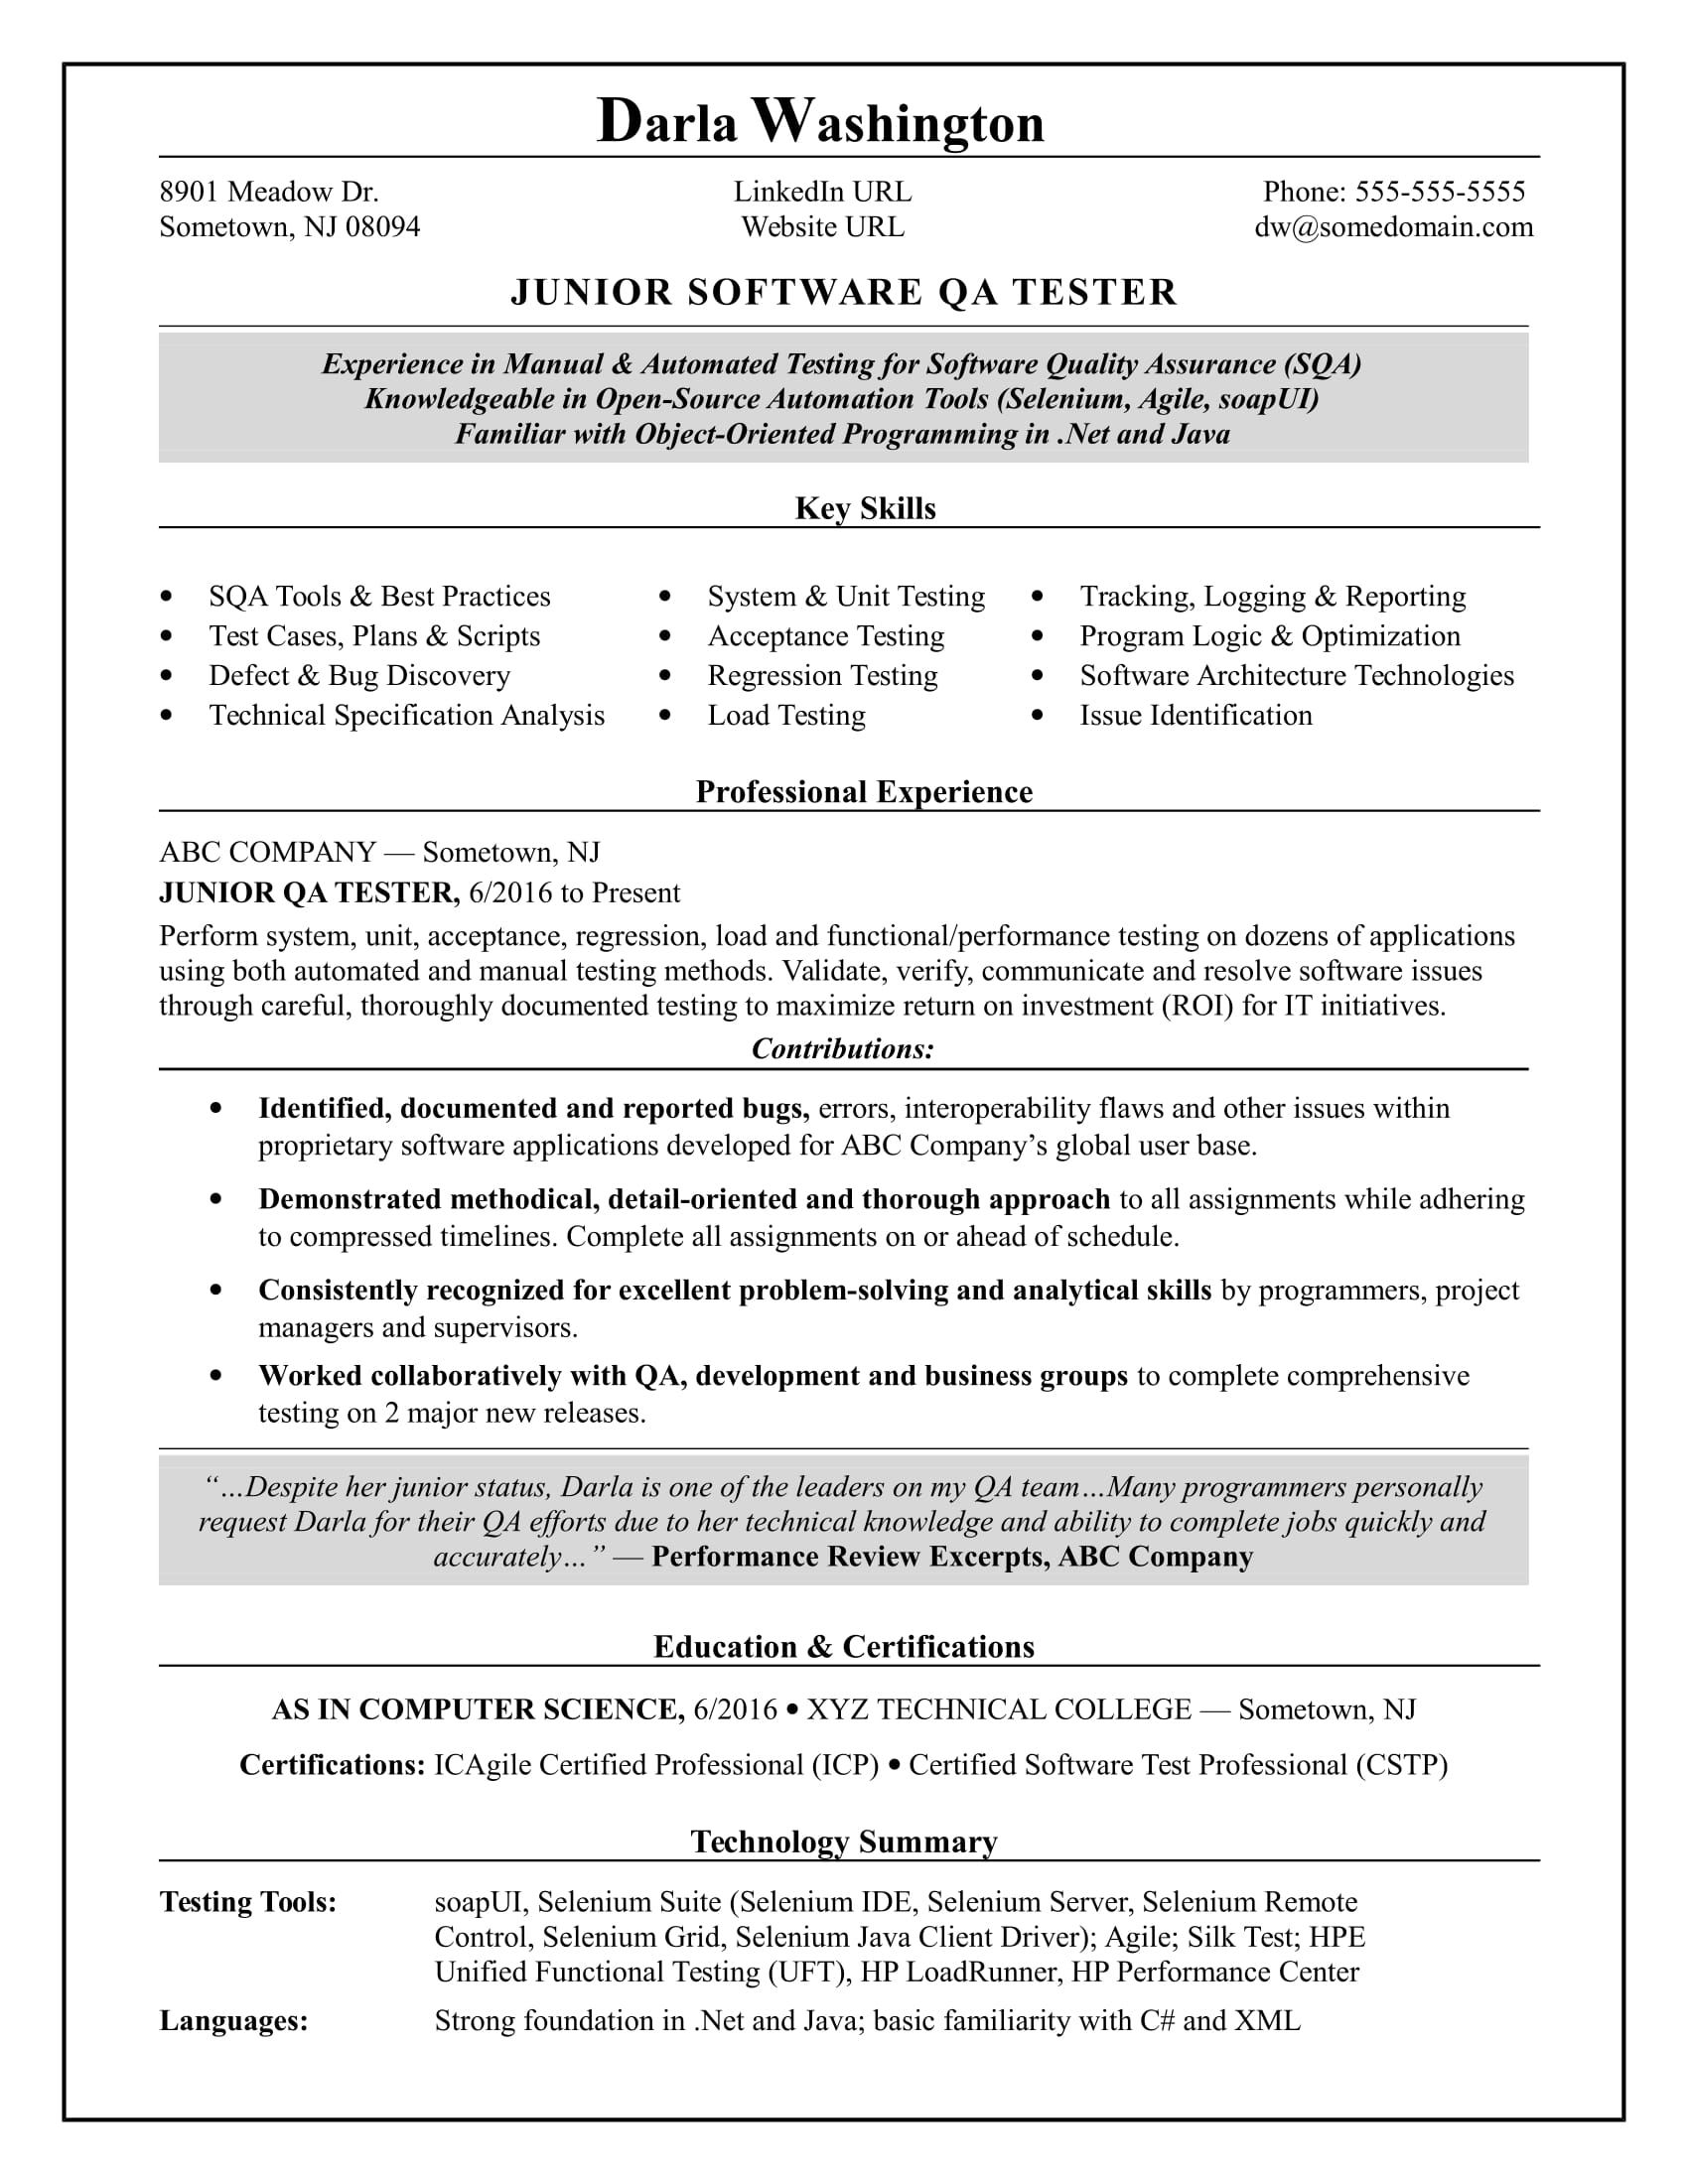 Software Qa Resume Experienced Qa Software Tester Resume Sample  Resume Advice And .